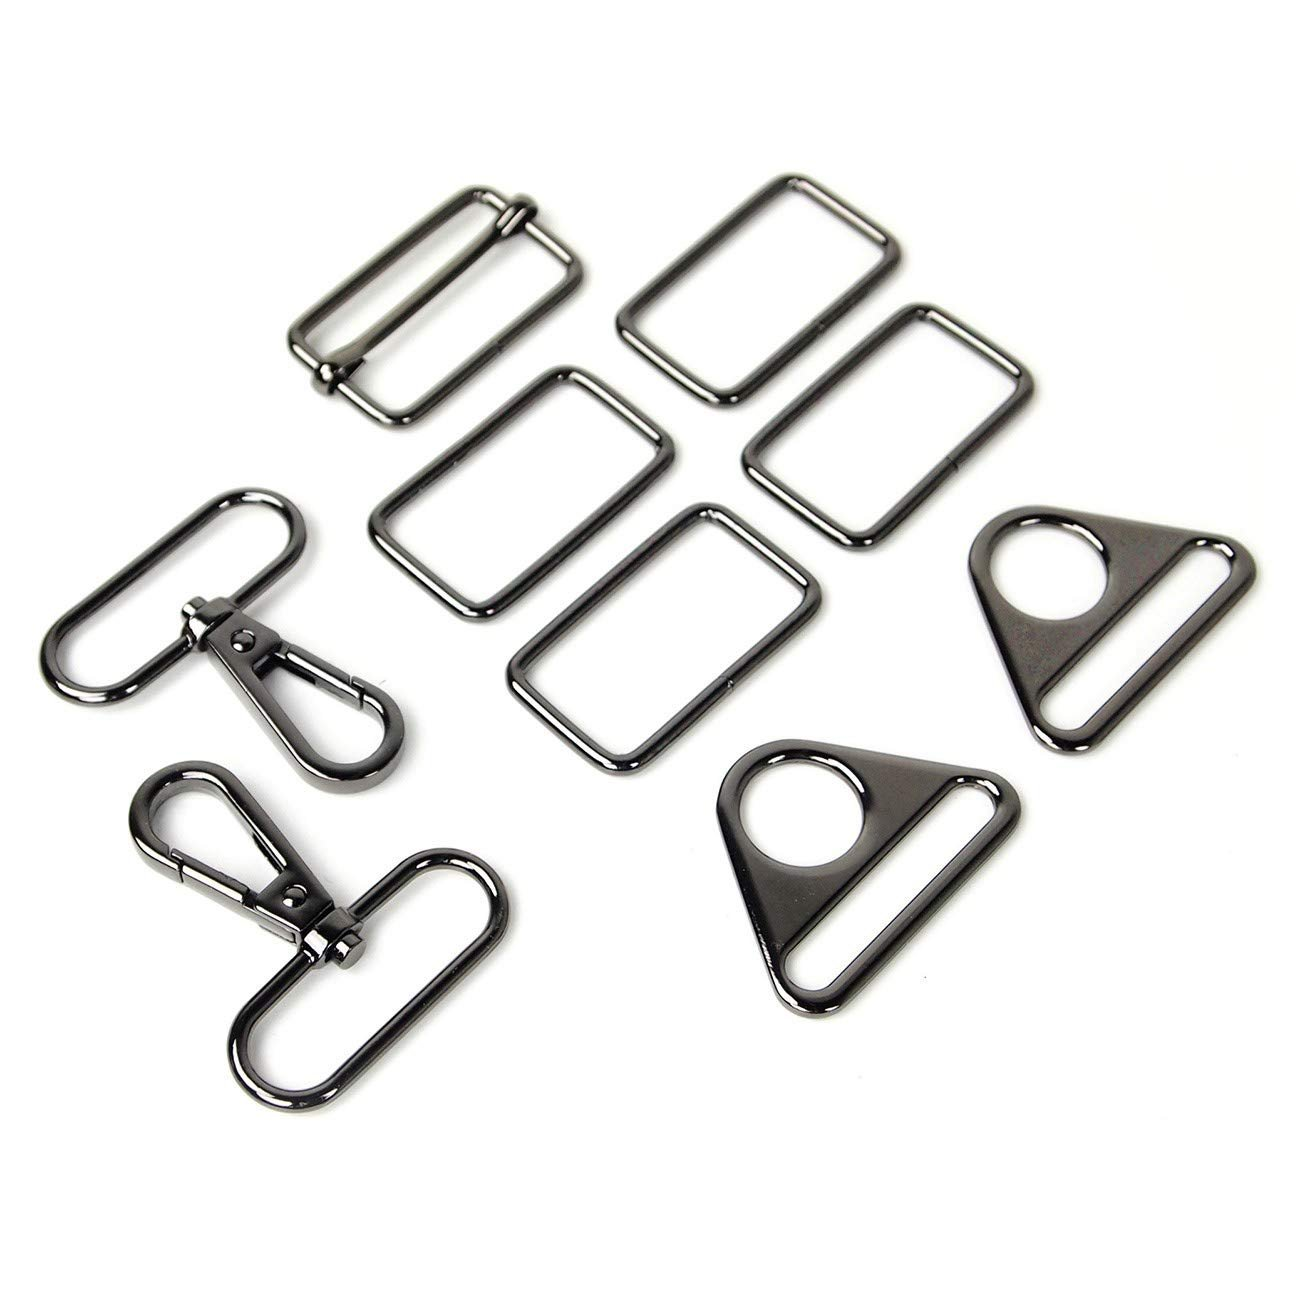 Gunmetal Townsend Hardware Kit